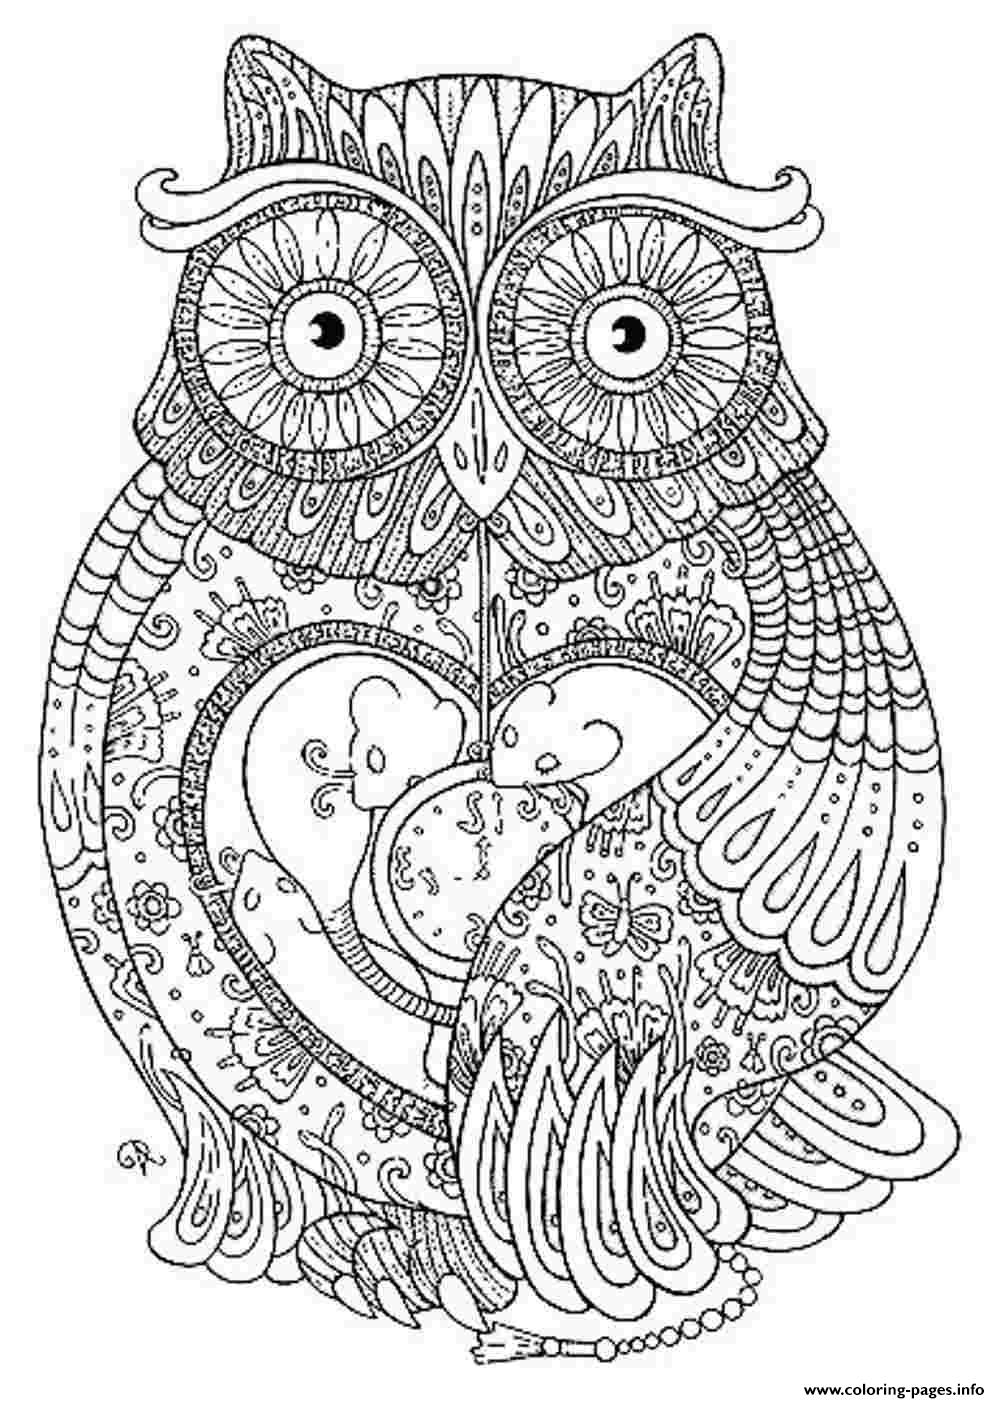 Animal Coloring Pages For Adults Coloring Pages Printable